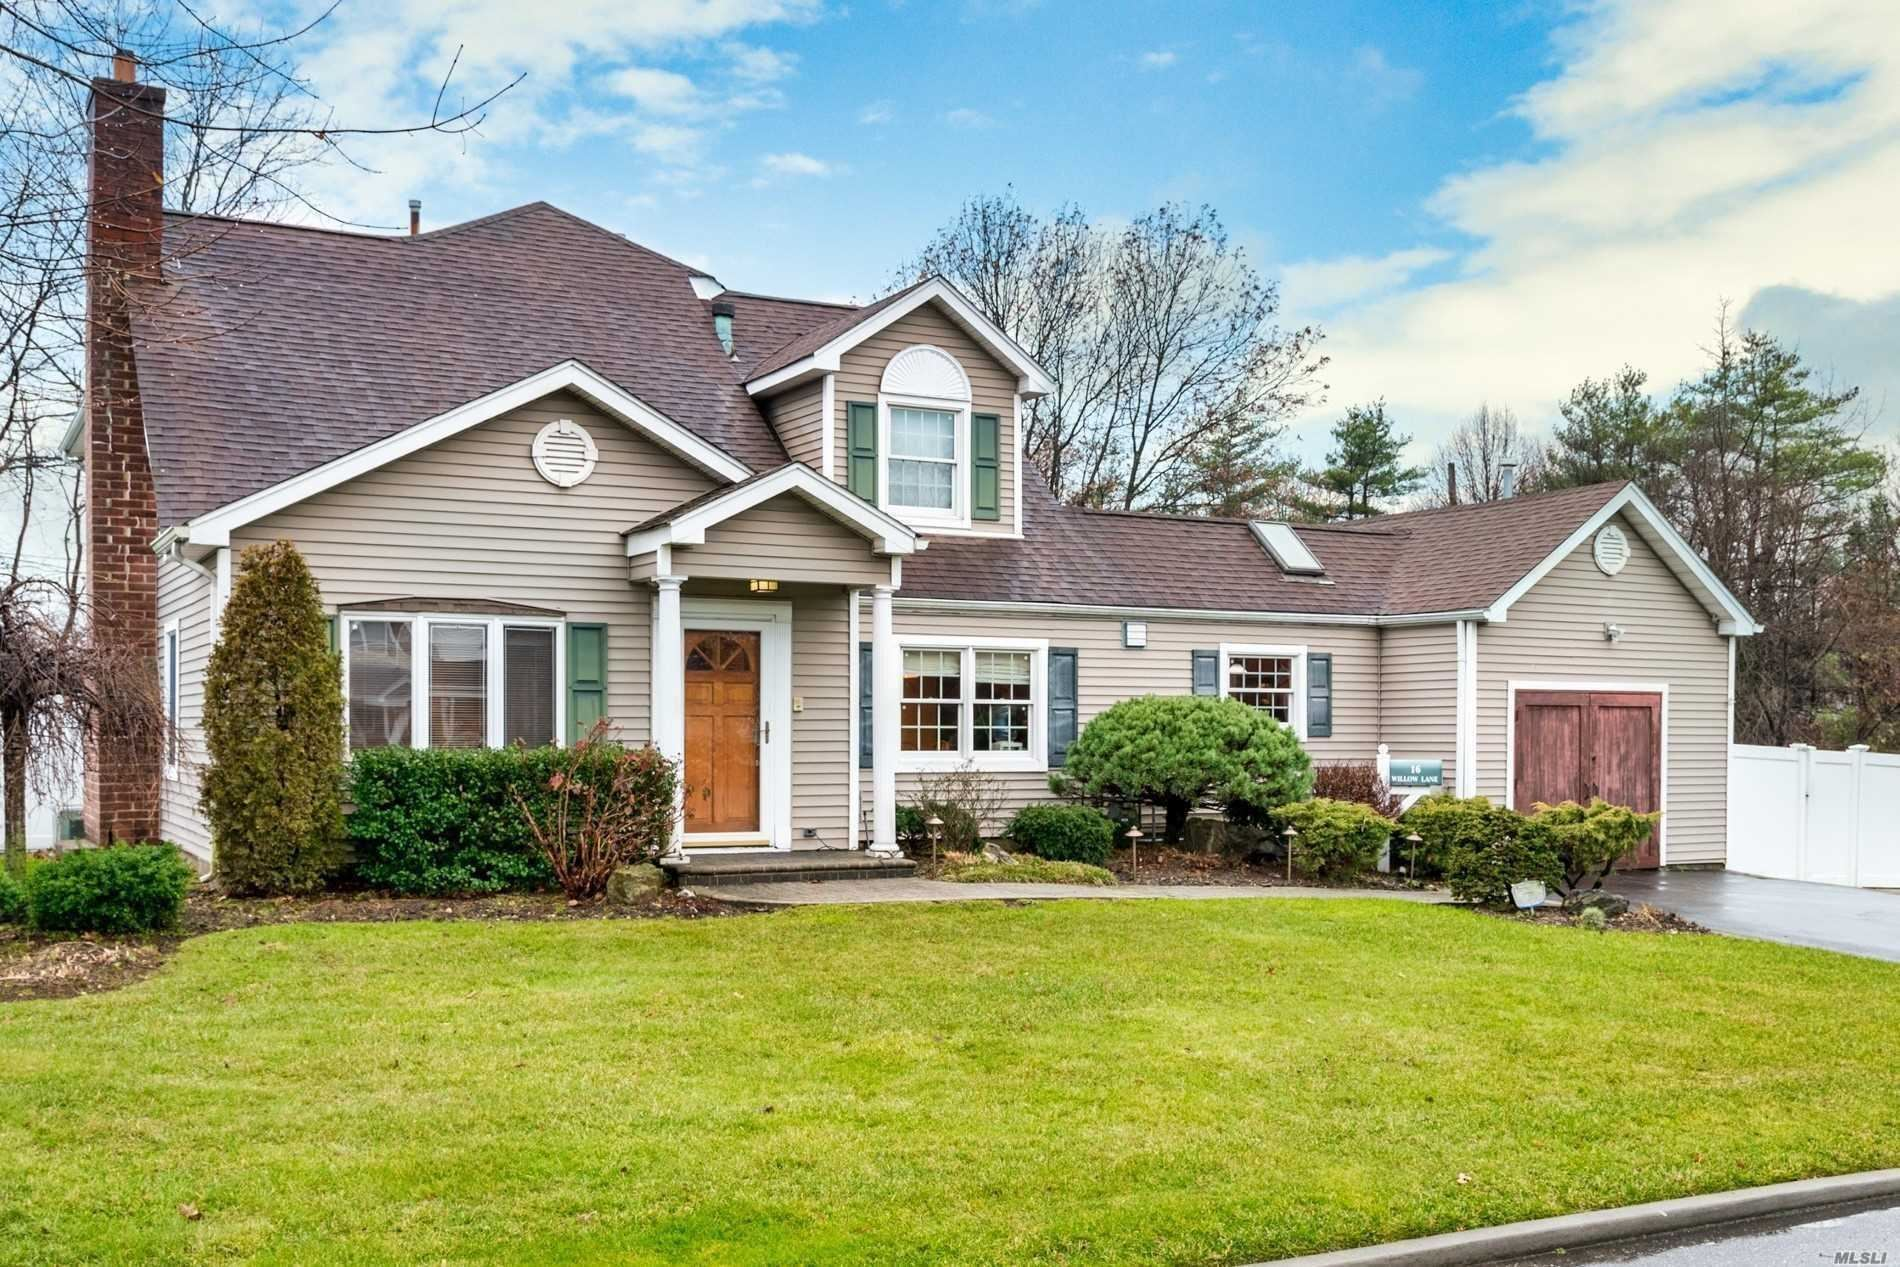 16 Willow Lane, Carle Place, NY 11514 - MLS#: 3231118